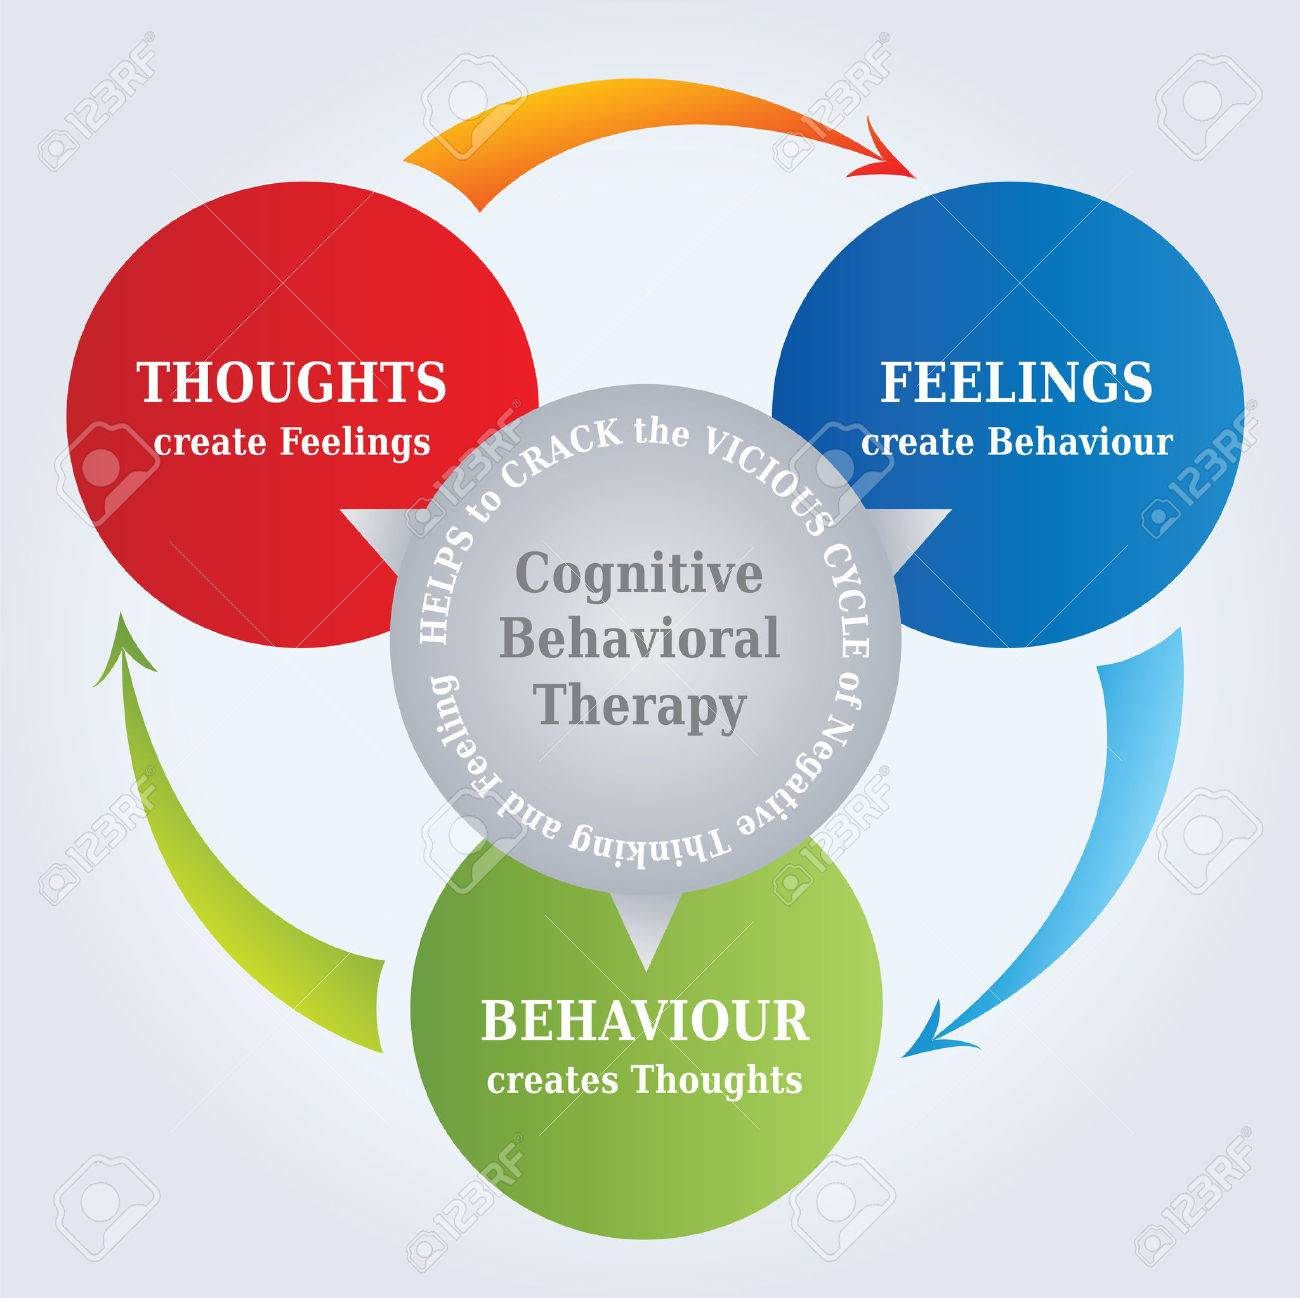 CBT Cycle Diagram - Thoughts create Reality - Psychotherapy - 46455833